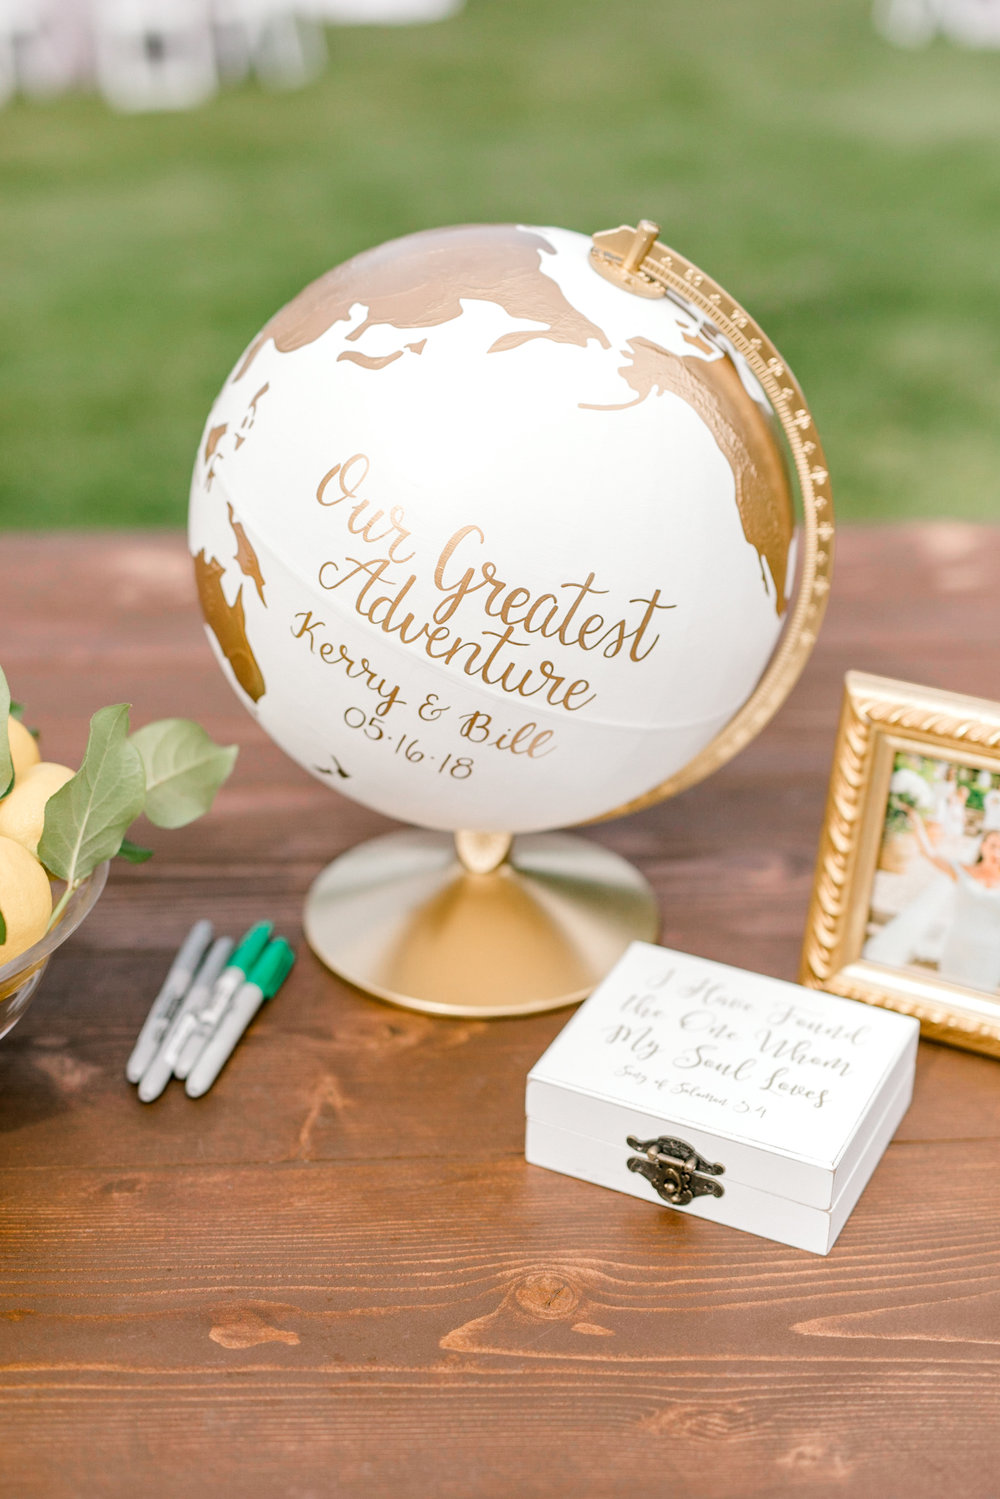 Creative white and gold globe guest book from an Italian themed wedding at the Baltimore Country Club.